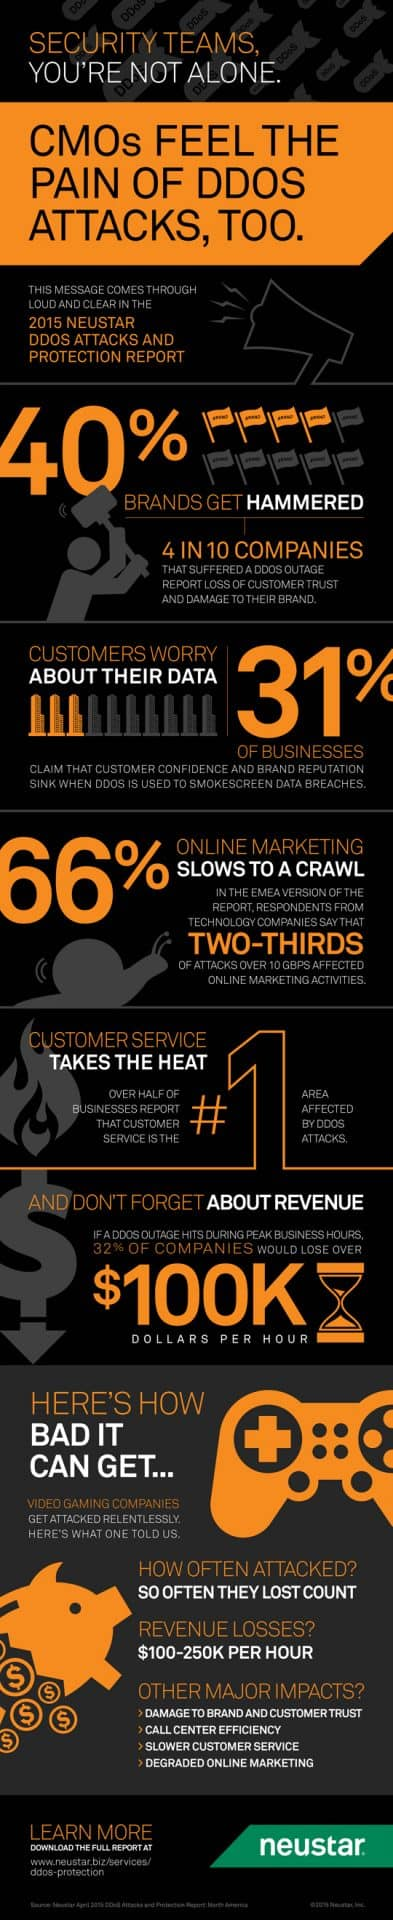 ddos-attacks infographic-